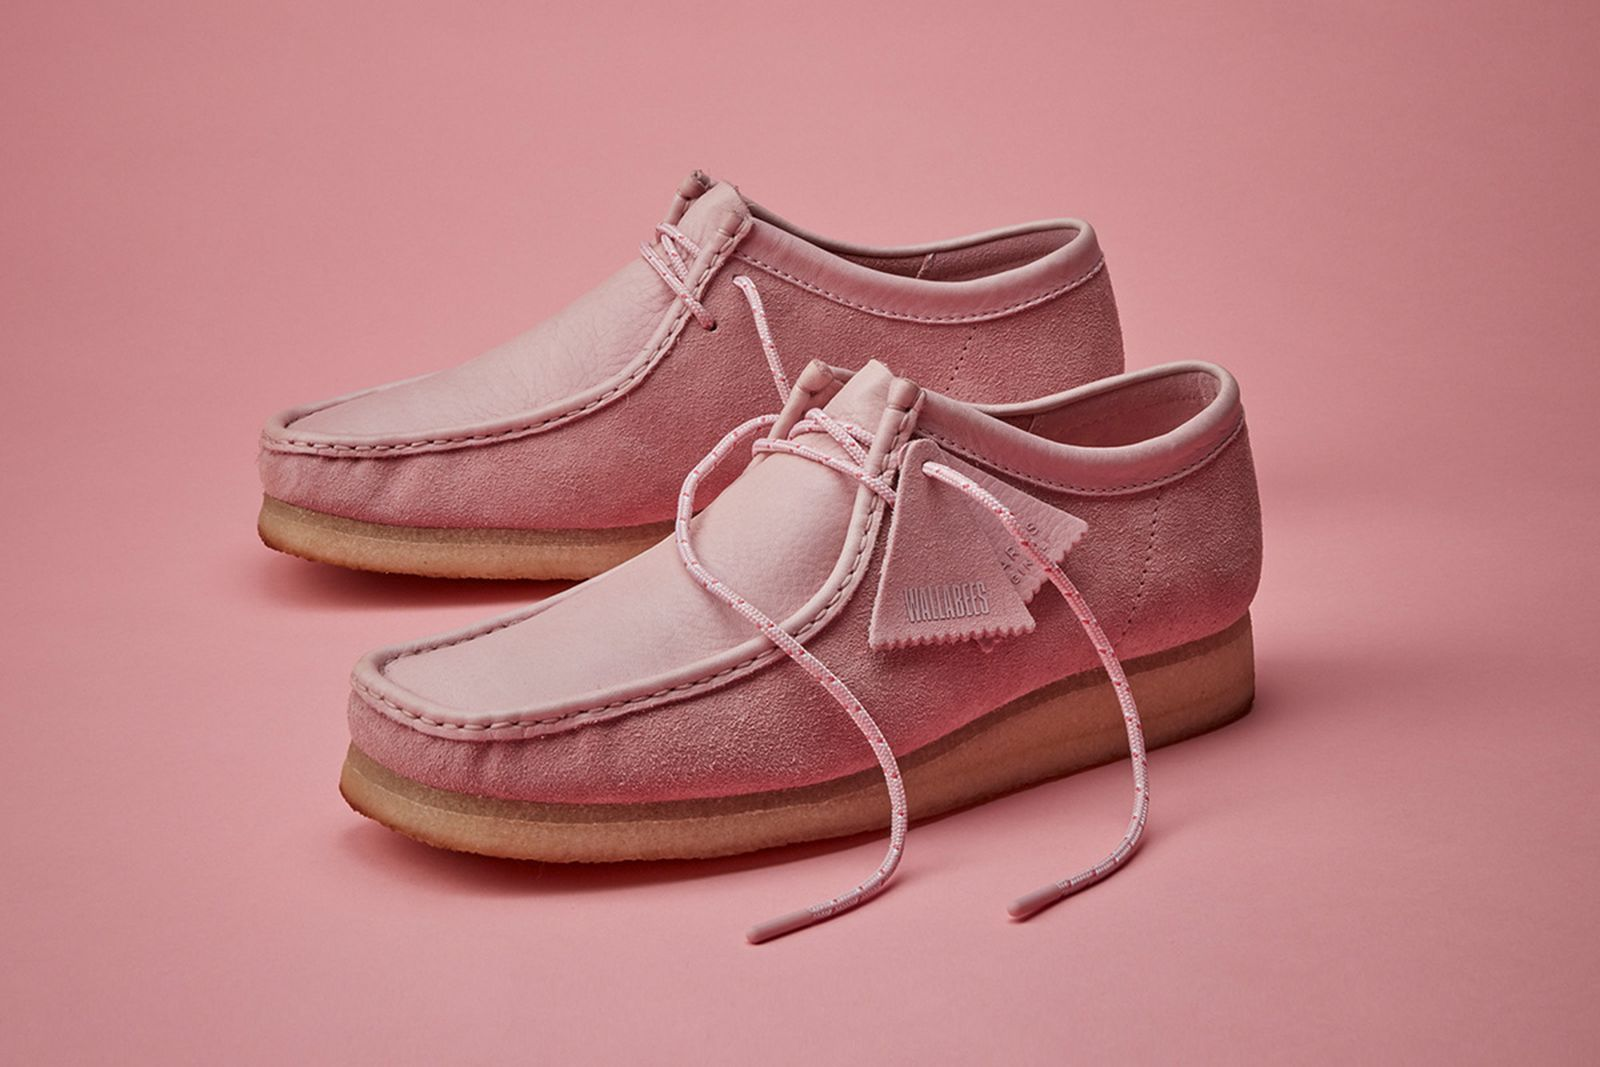 clarks-wallabee-low-pink